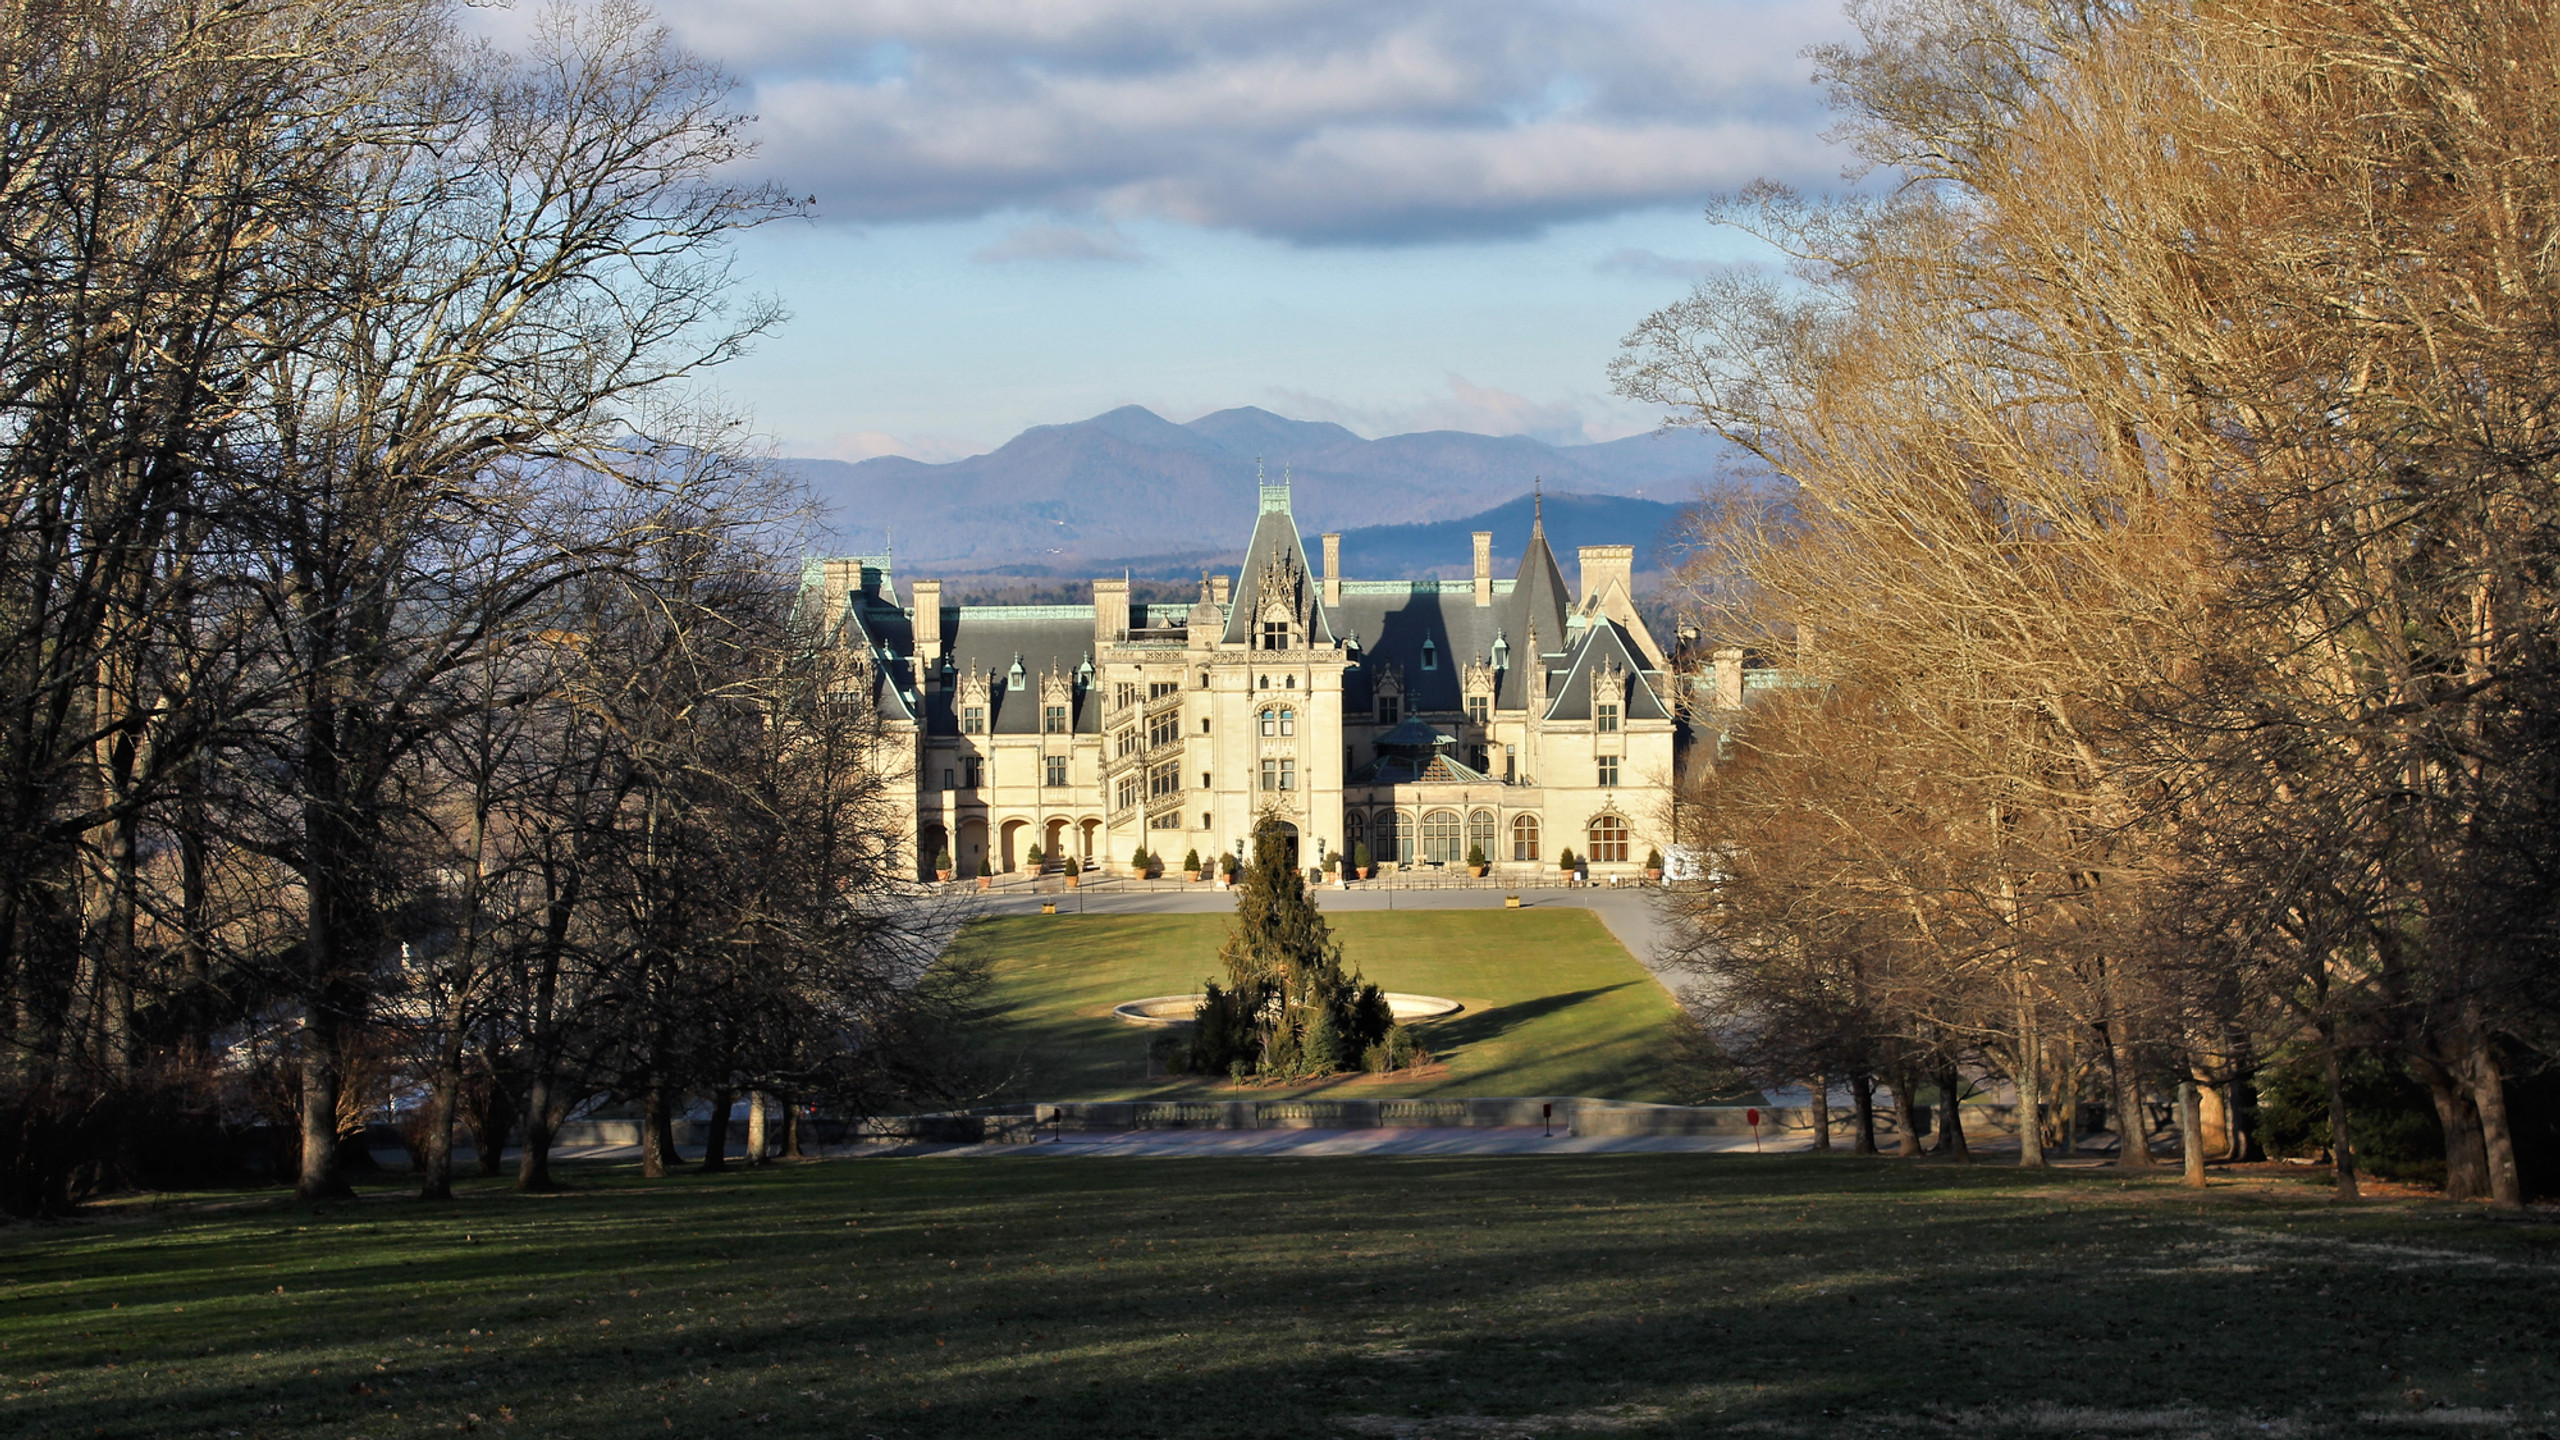 Downhill View of Biltmore